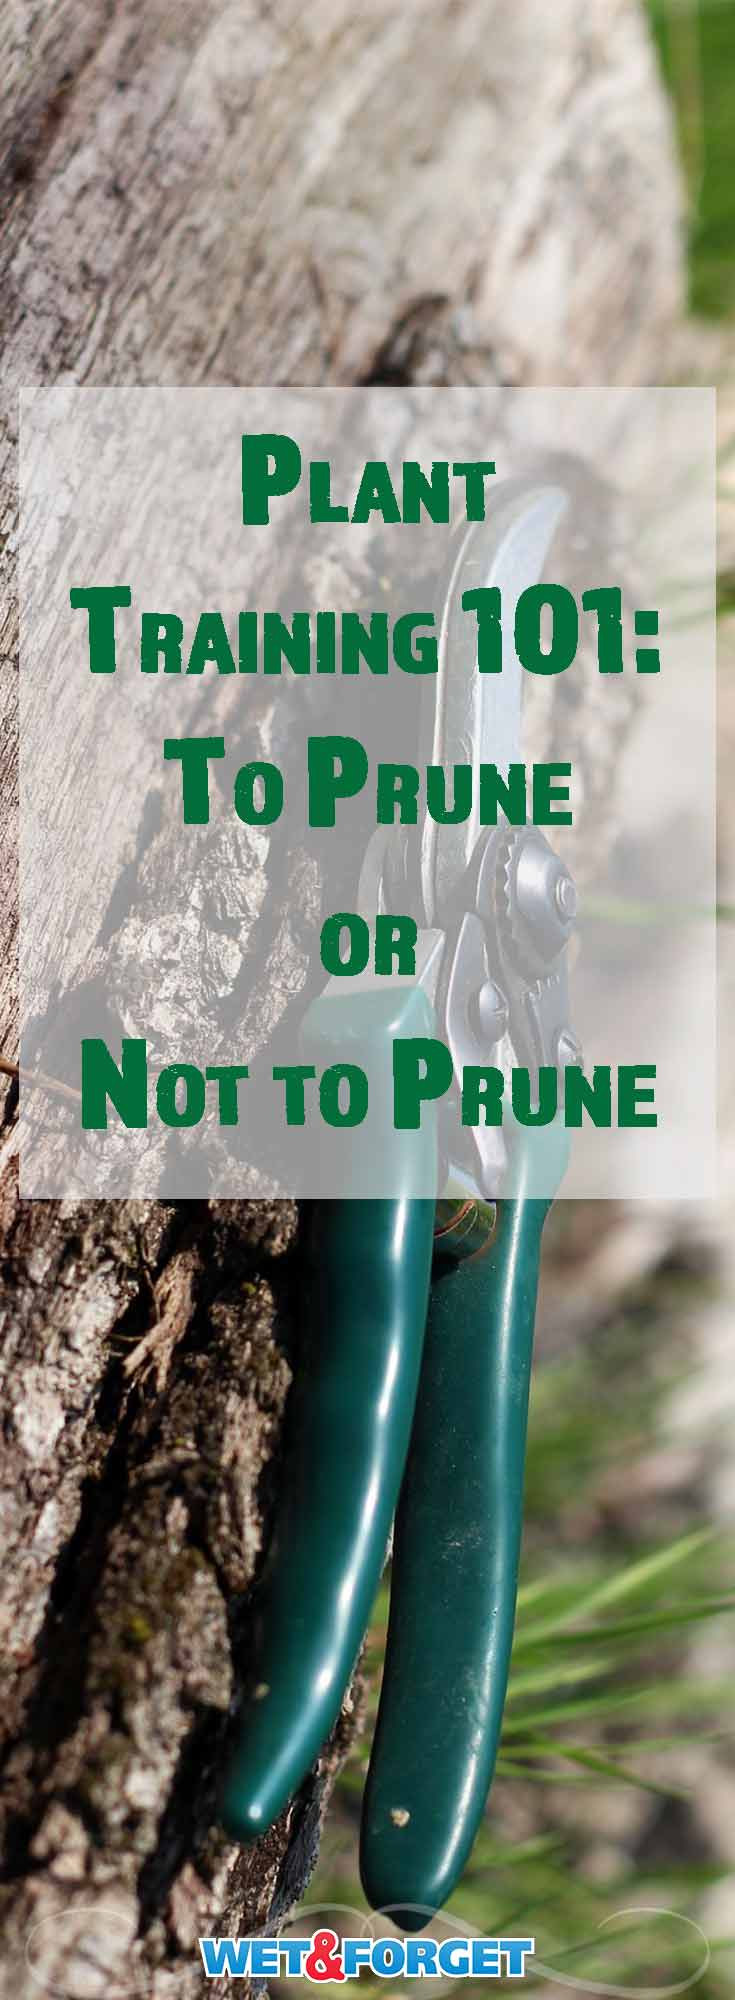 Some plants in your garden grow the best with a little bit of help from your pruning shears. Whereas others do much better if you leave the pruners in the shed. Some plants are more vulnerable than others as well. Here's a guide on how to prune and when to prune, to help give your plants a long, healthy life.